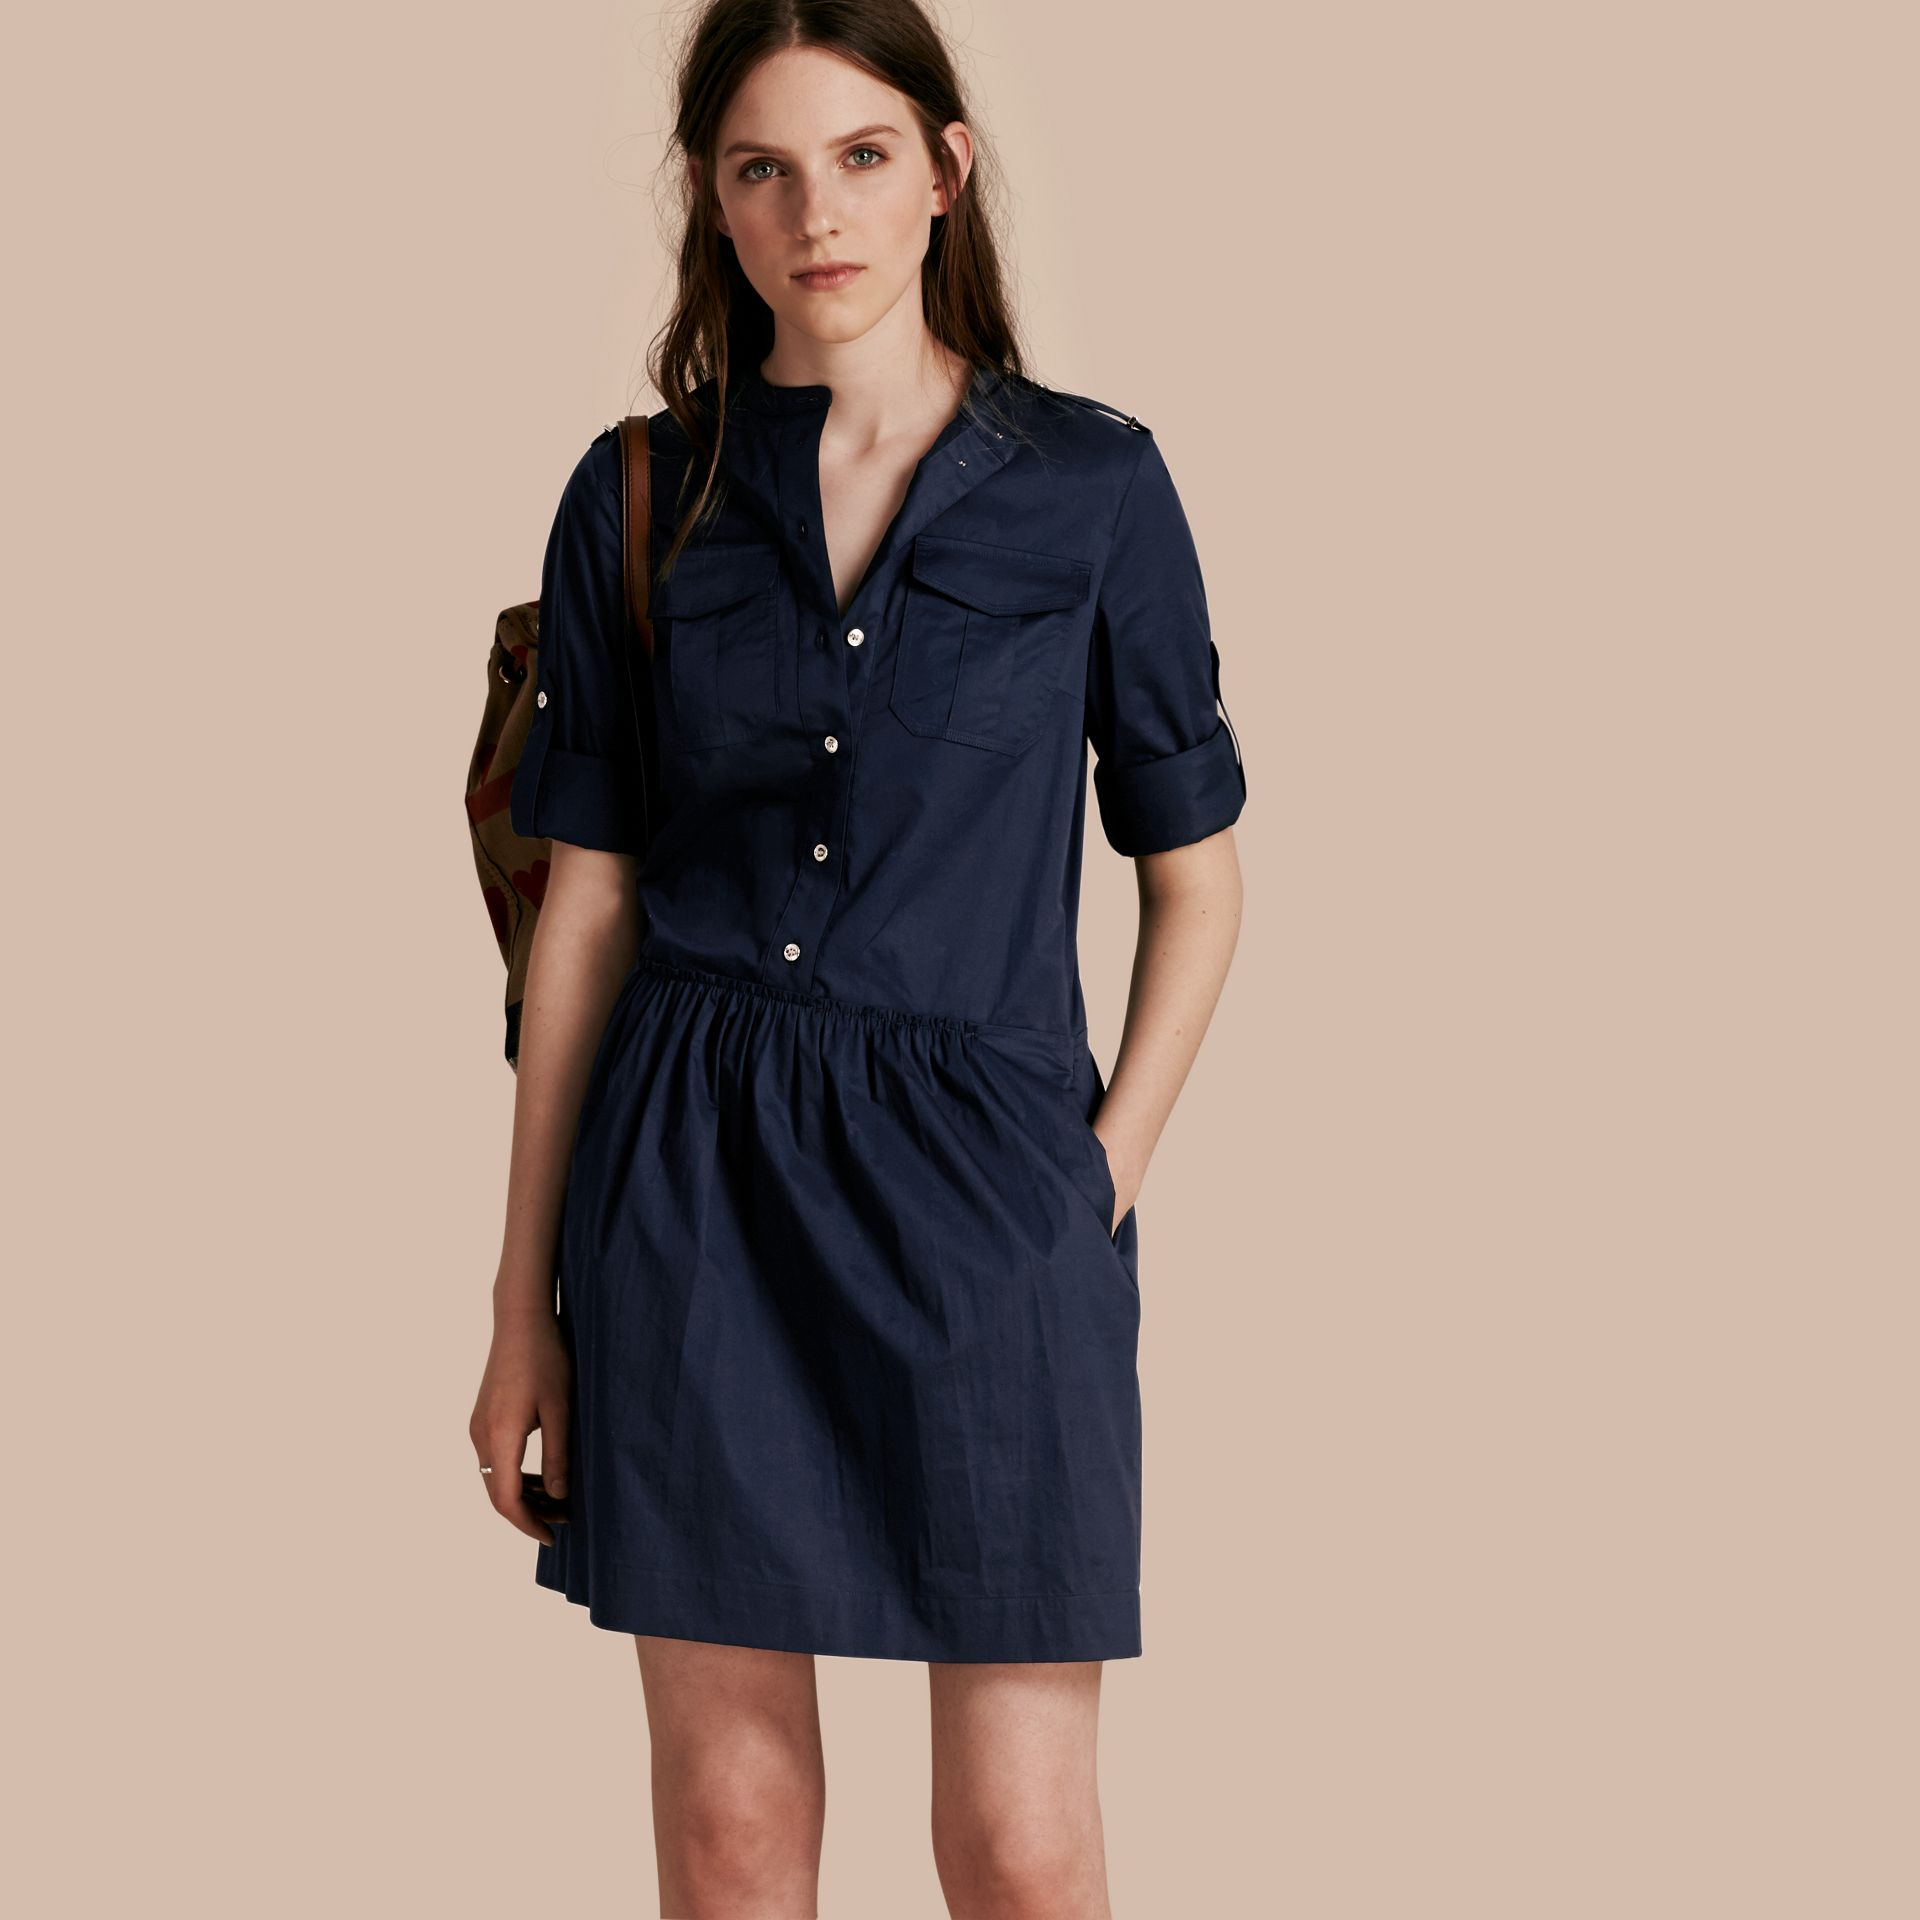 Dark pewter blue Military-inspired Cotton Blend Shirt Dress Dark Pewter Blue - gallery image 1